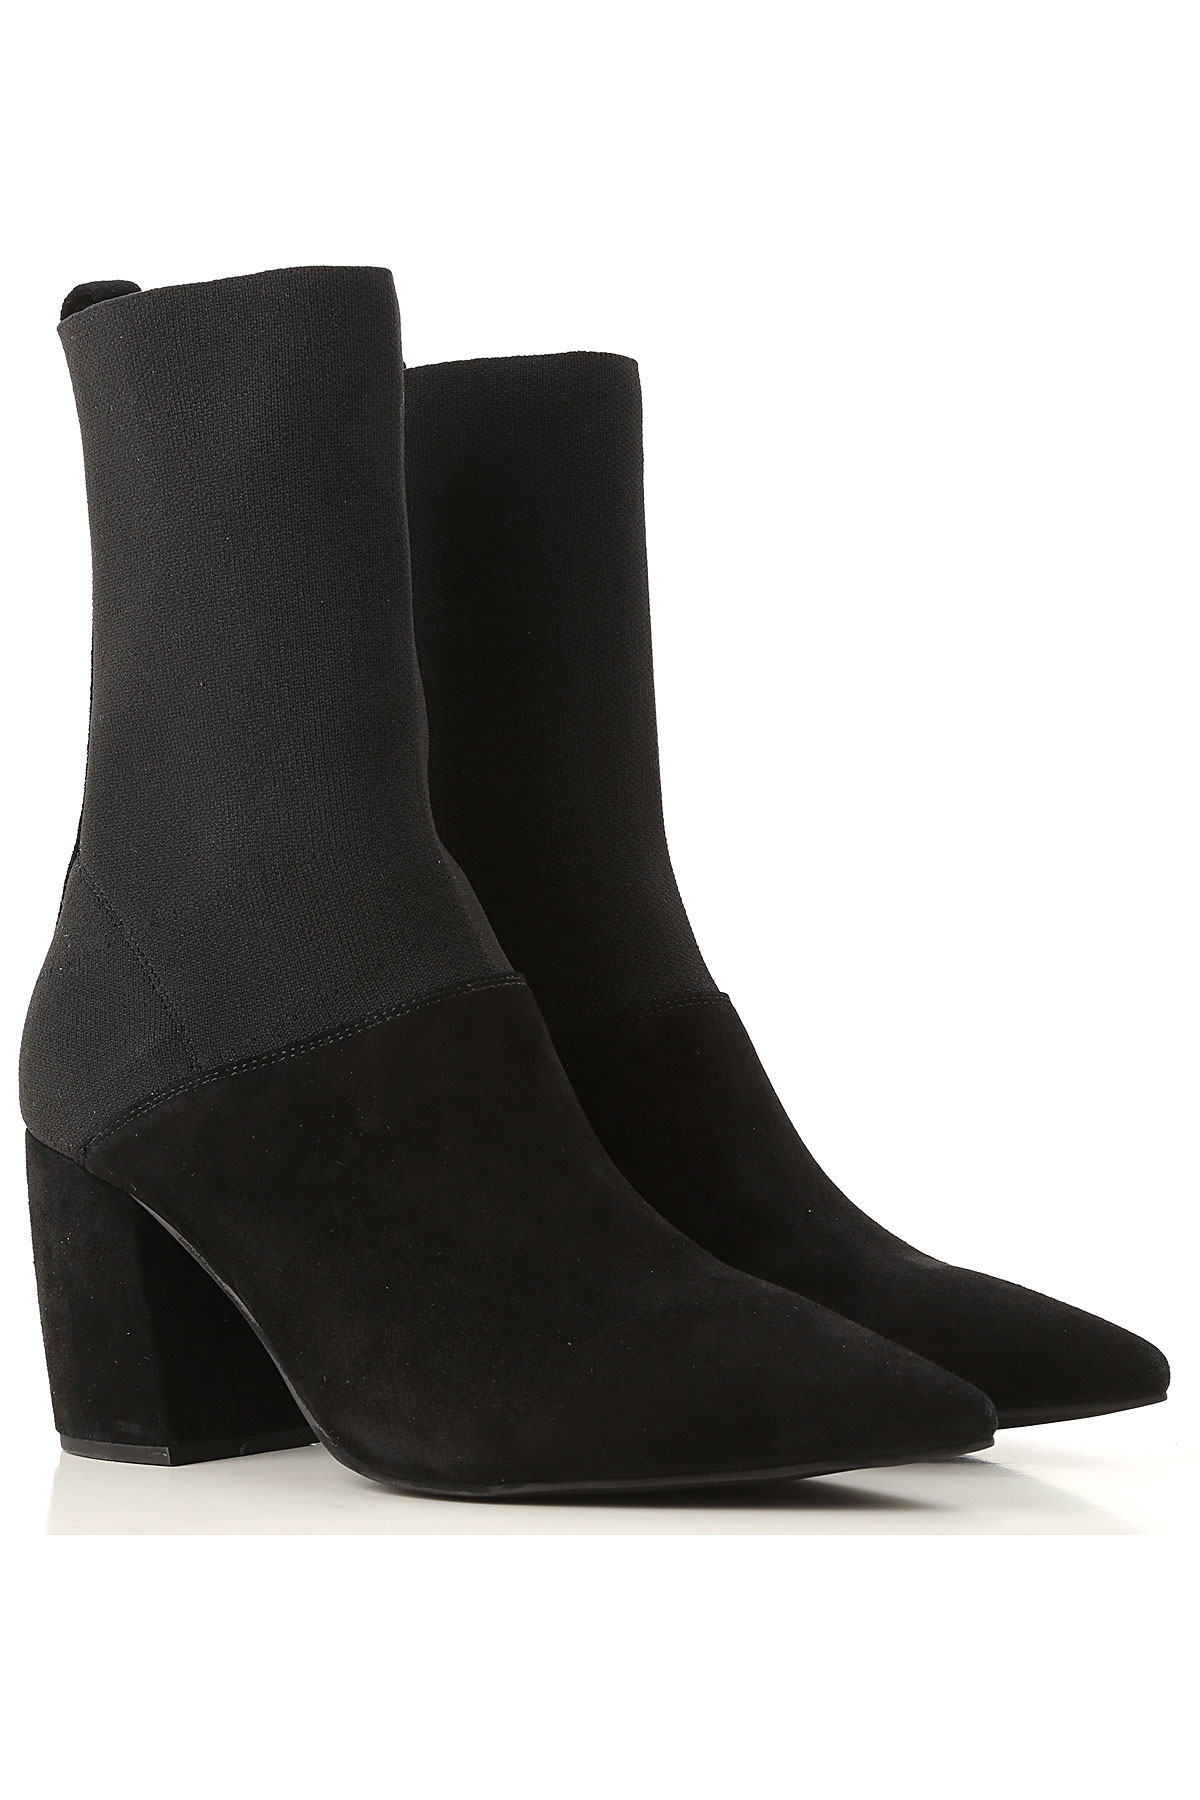 Image of Jeffrey Campbell Boots for Women, Booties, Black, Suede leather, 2017, 10 11 6 7 8 9